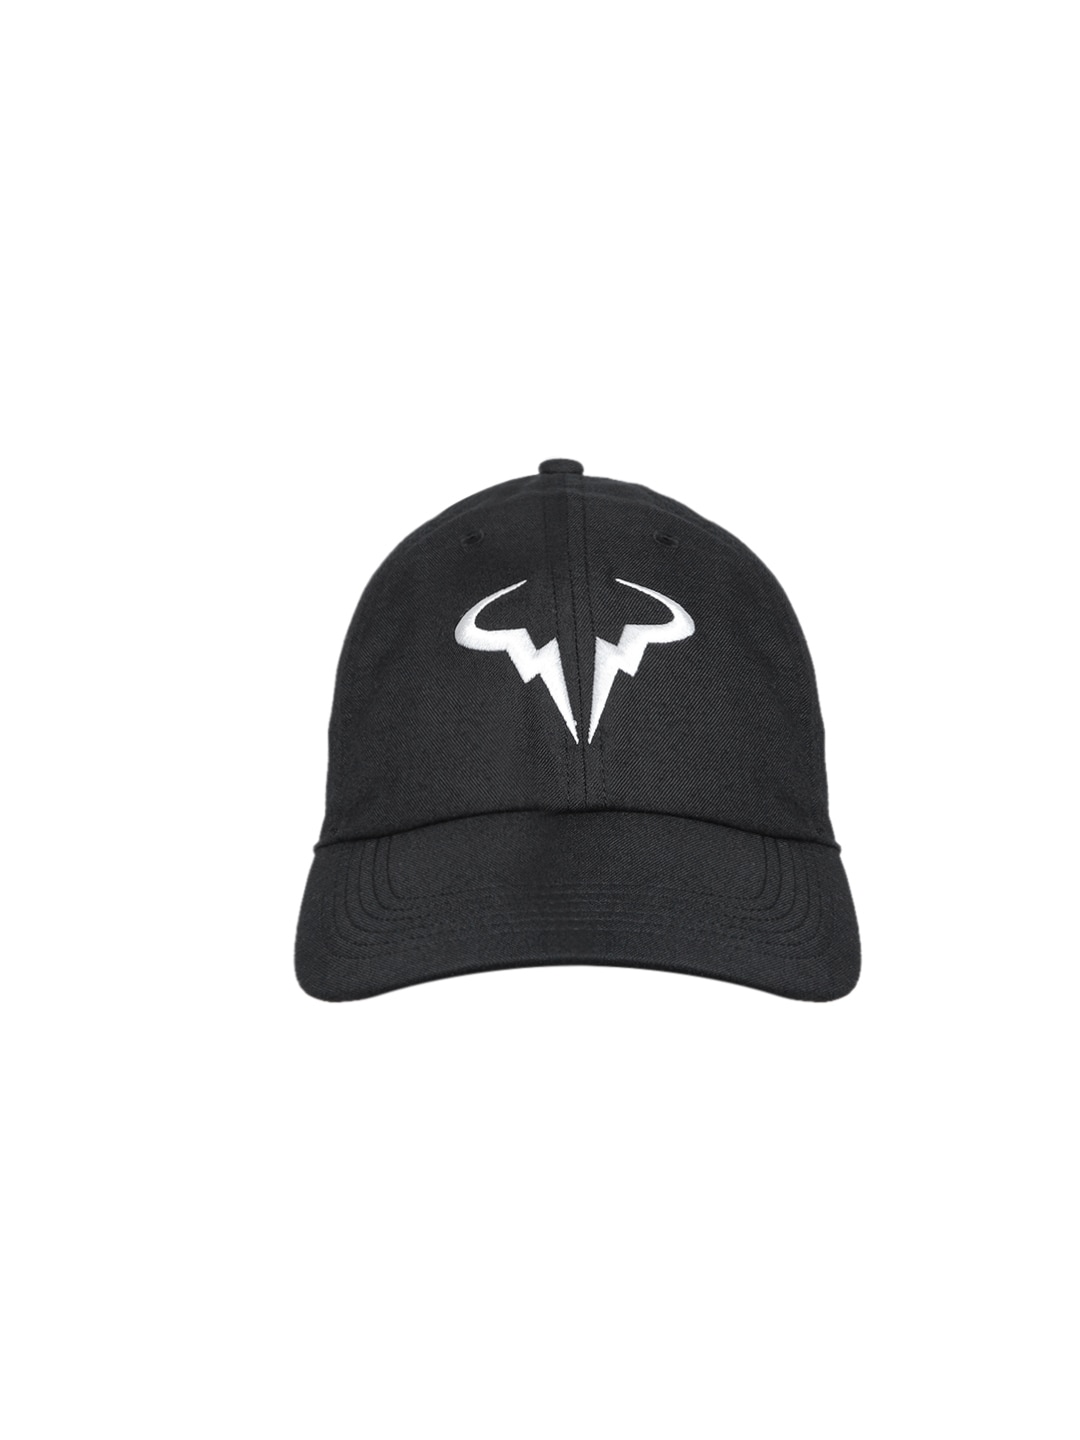 7cfc5a3c158 Sports Caps - Buy Sports Caps Online in India